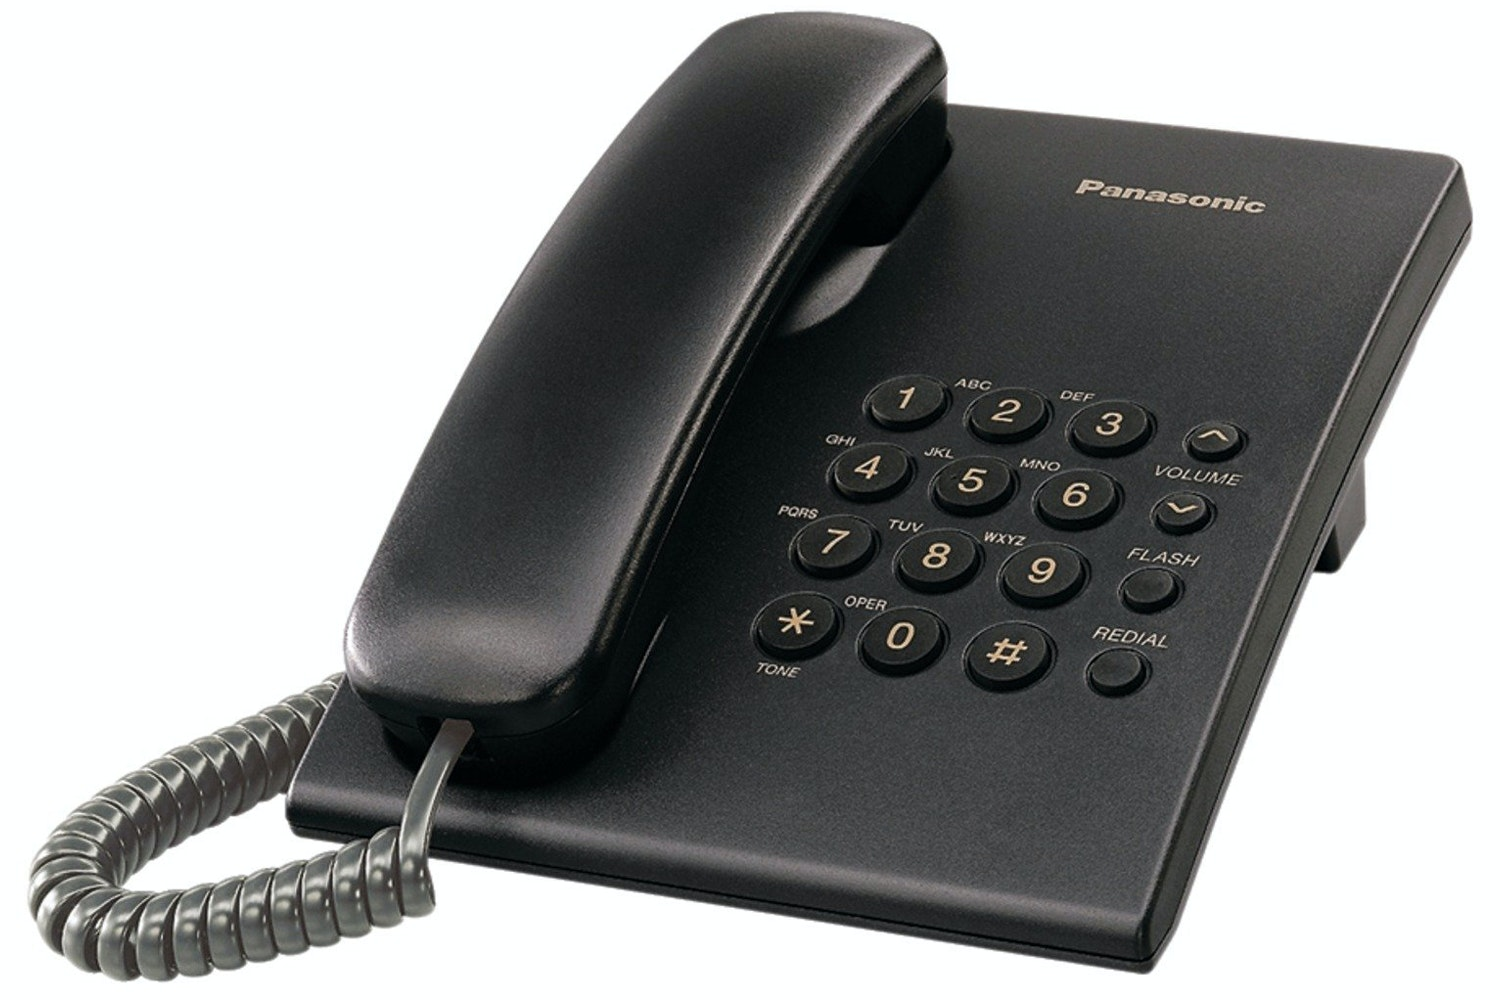 Panasonic 500 Desk Phone